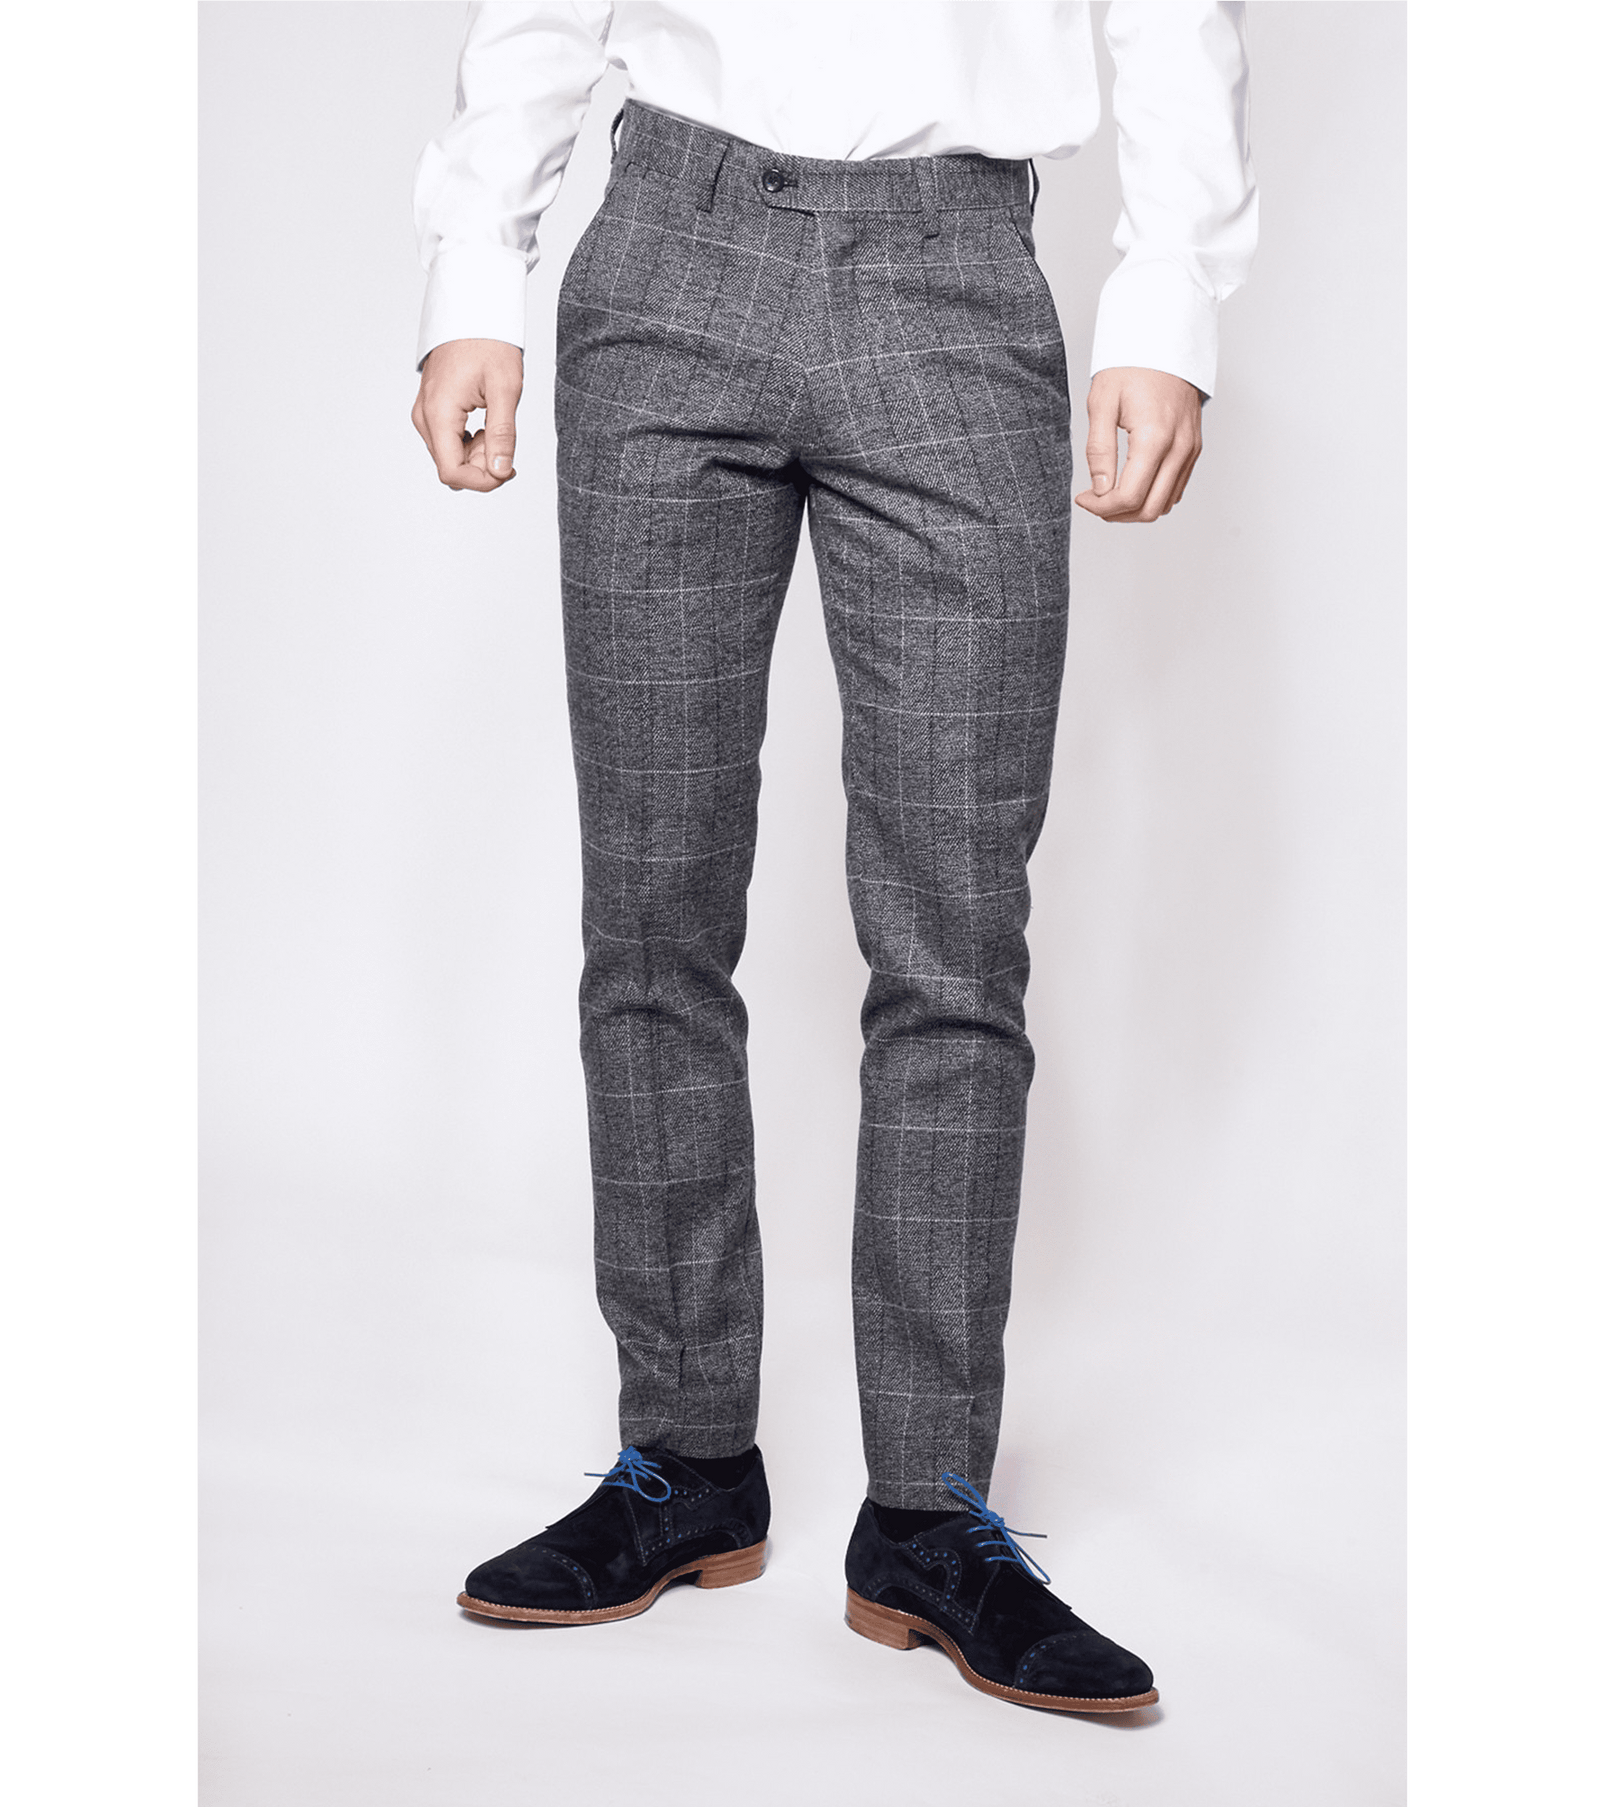 MARC DARCY Scott Check Tweed Trousers - Revolver Menswear Bawtry